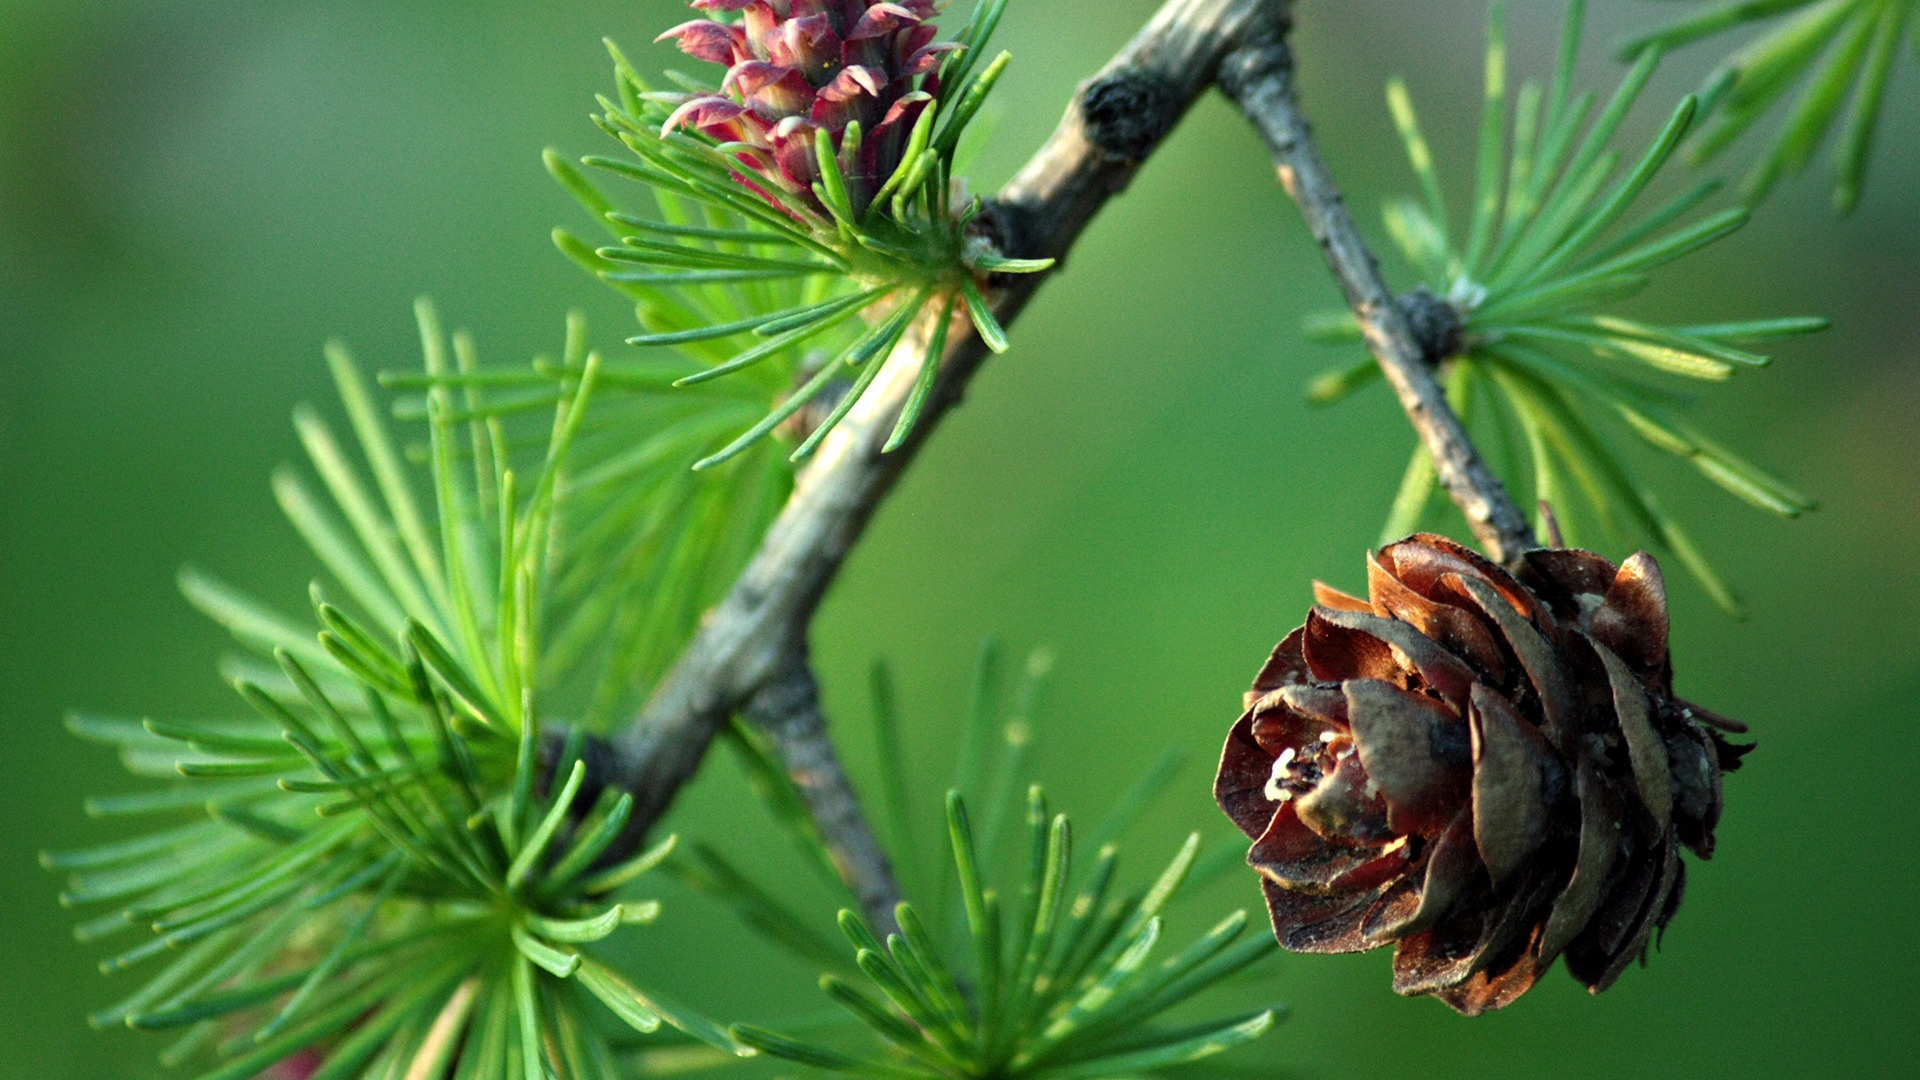 Pinecone wallpaper 1920x1080 81541 for Pinecone wallpaper